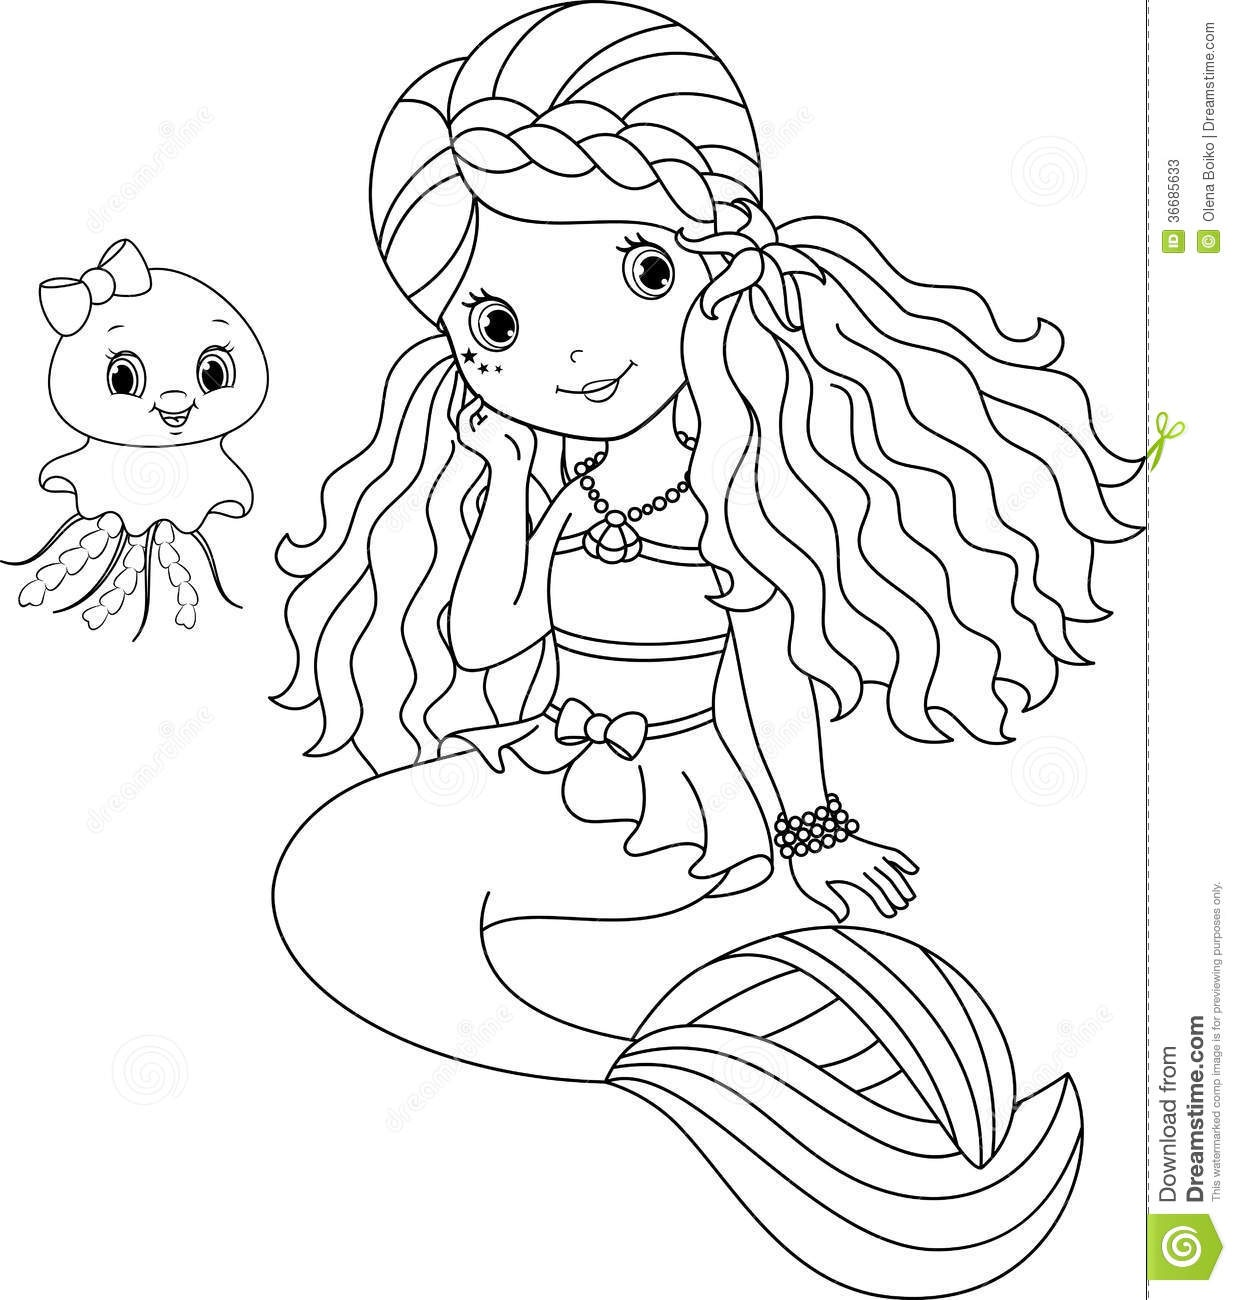 1236x1300 Just Add Water Cartoon Coloring Pages Download Coloring Sheets